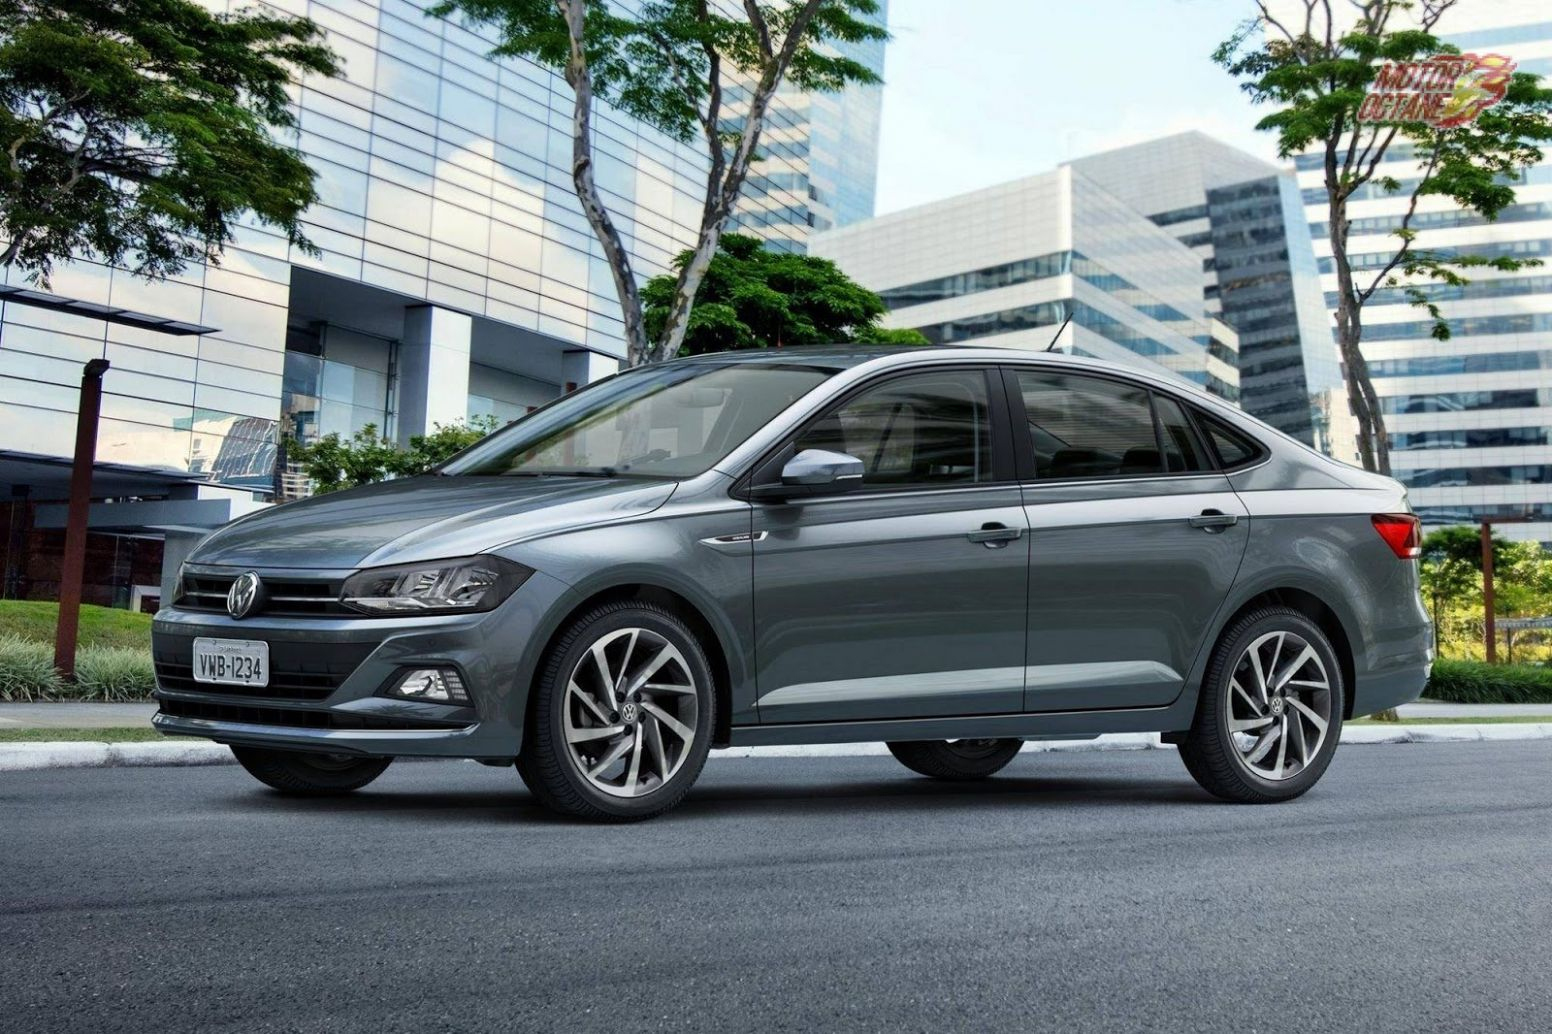 New 2021 Volkswagen Vento Interior Price Review 2021